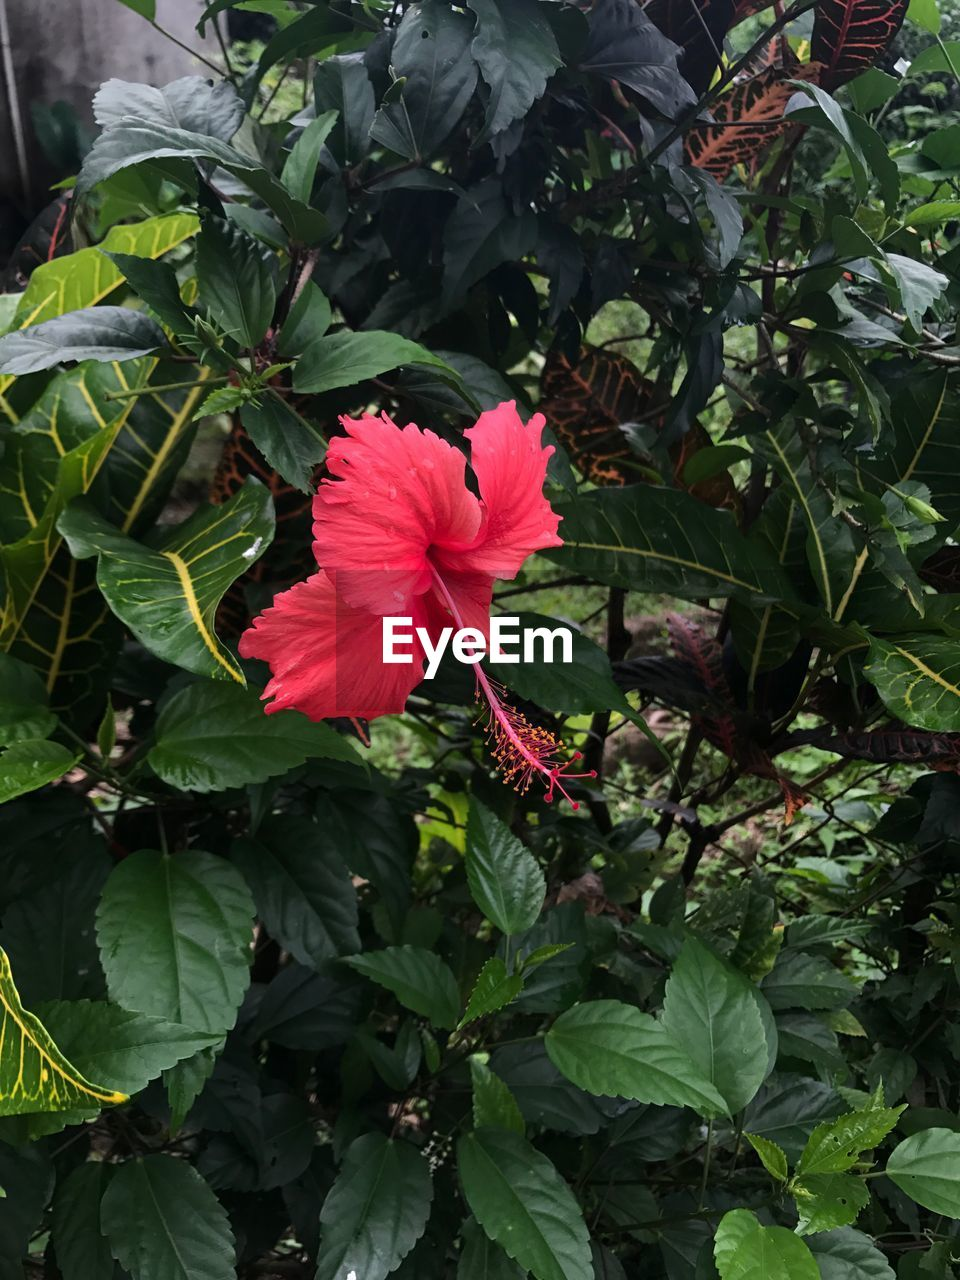 flower, growth, leaf, red, petal, green color, nature, fragility, blooming, plant, beauty in nature, freshness, flower head, hibiscus, day, outdoors, no people, periwinkle